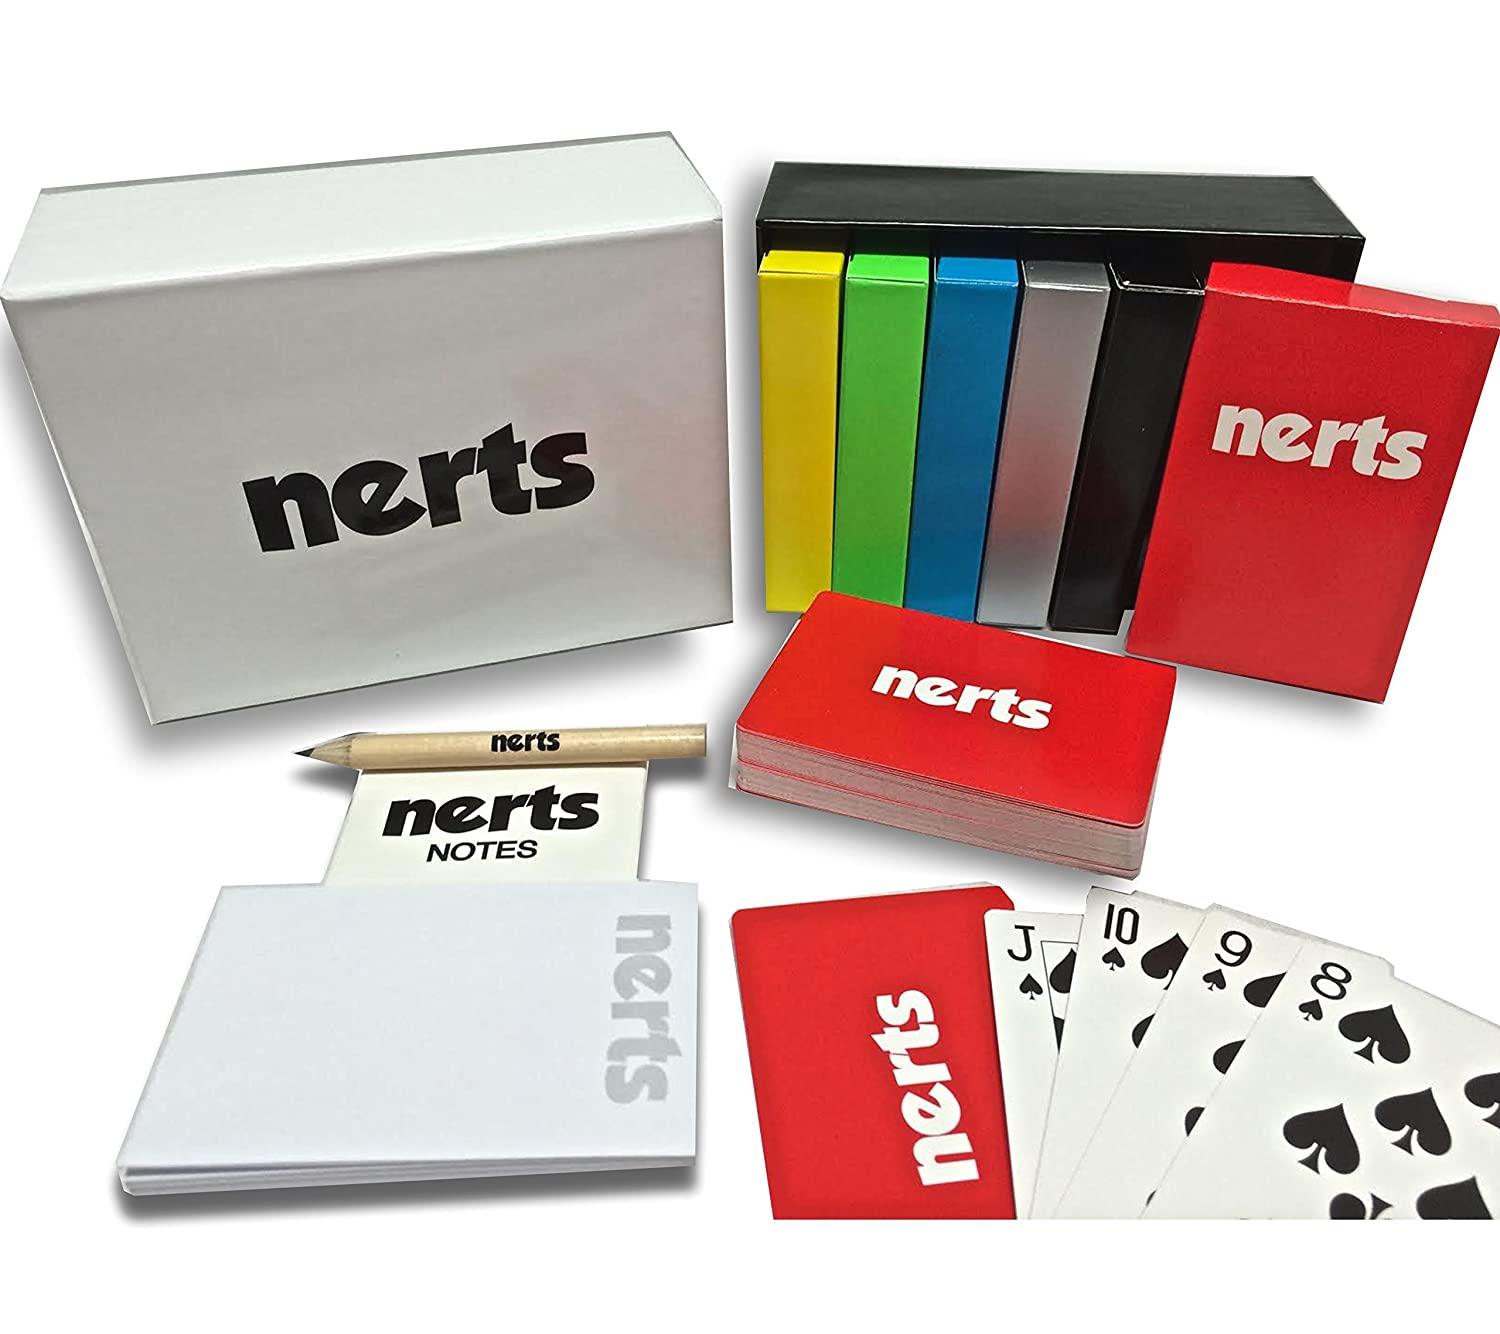 nerts card game for kids